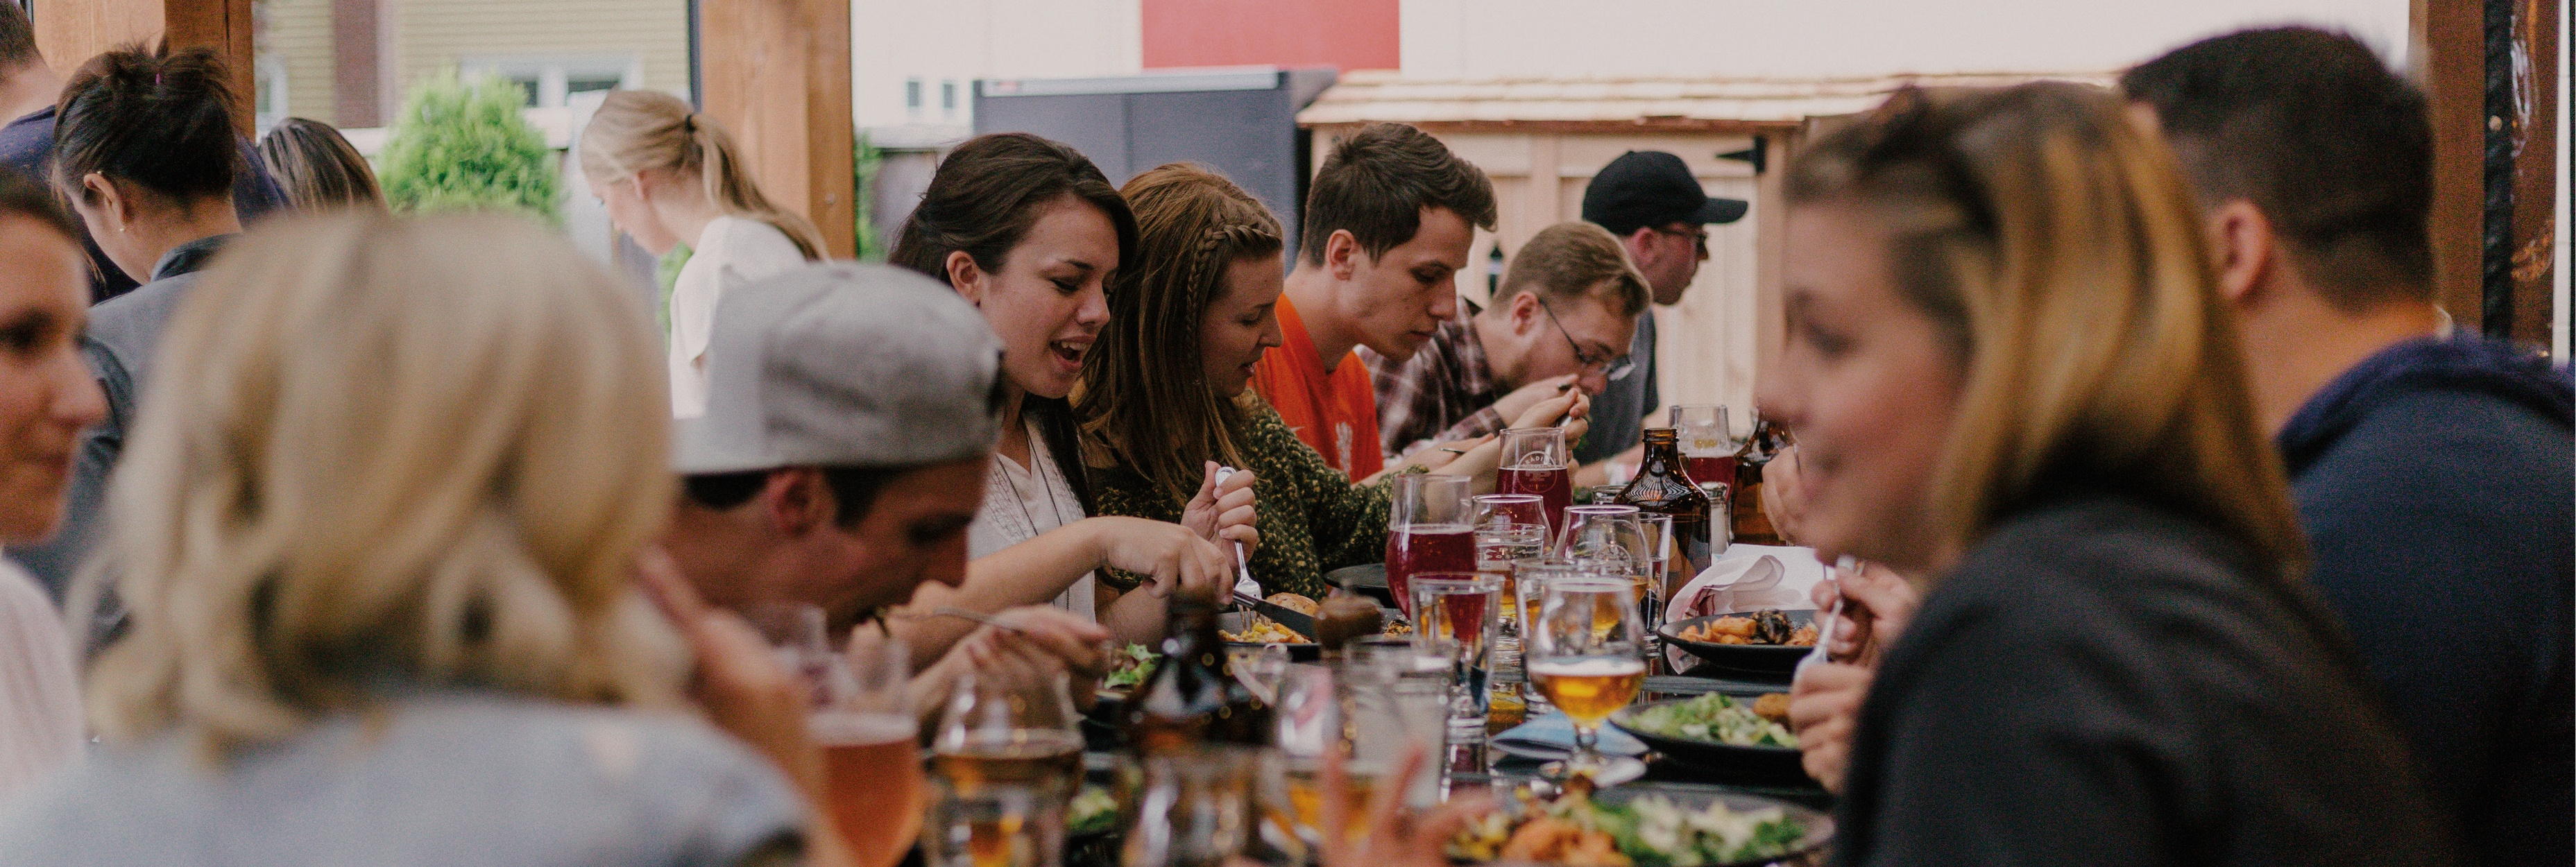 Save the date: 5 must-attend food tech events in 2016